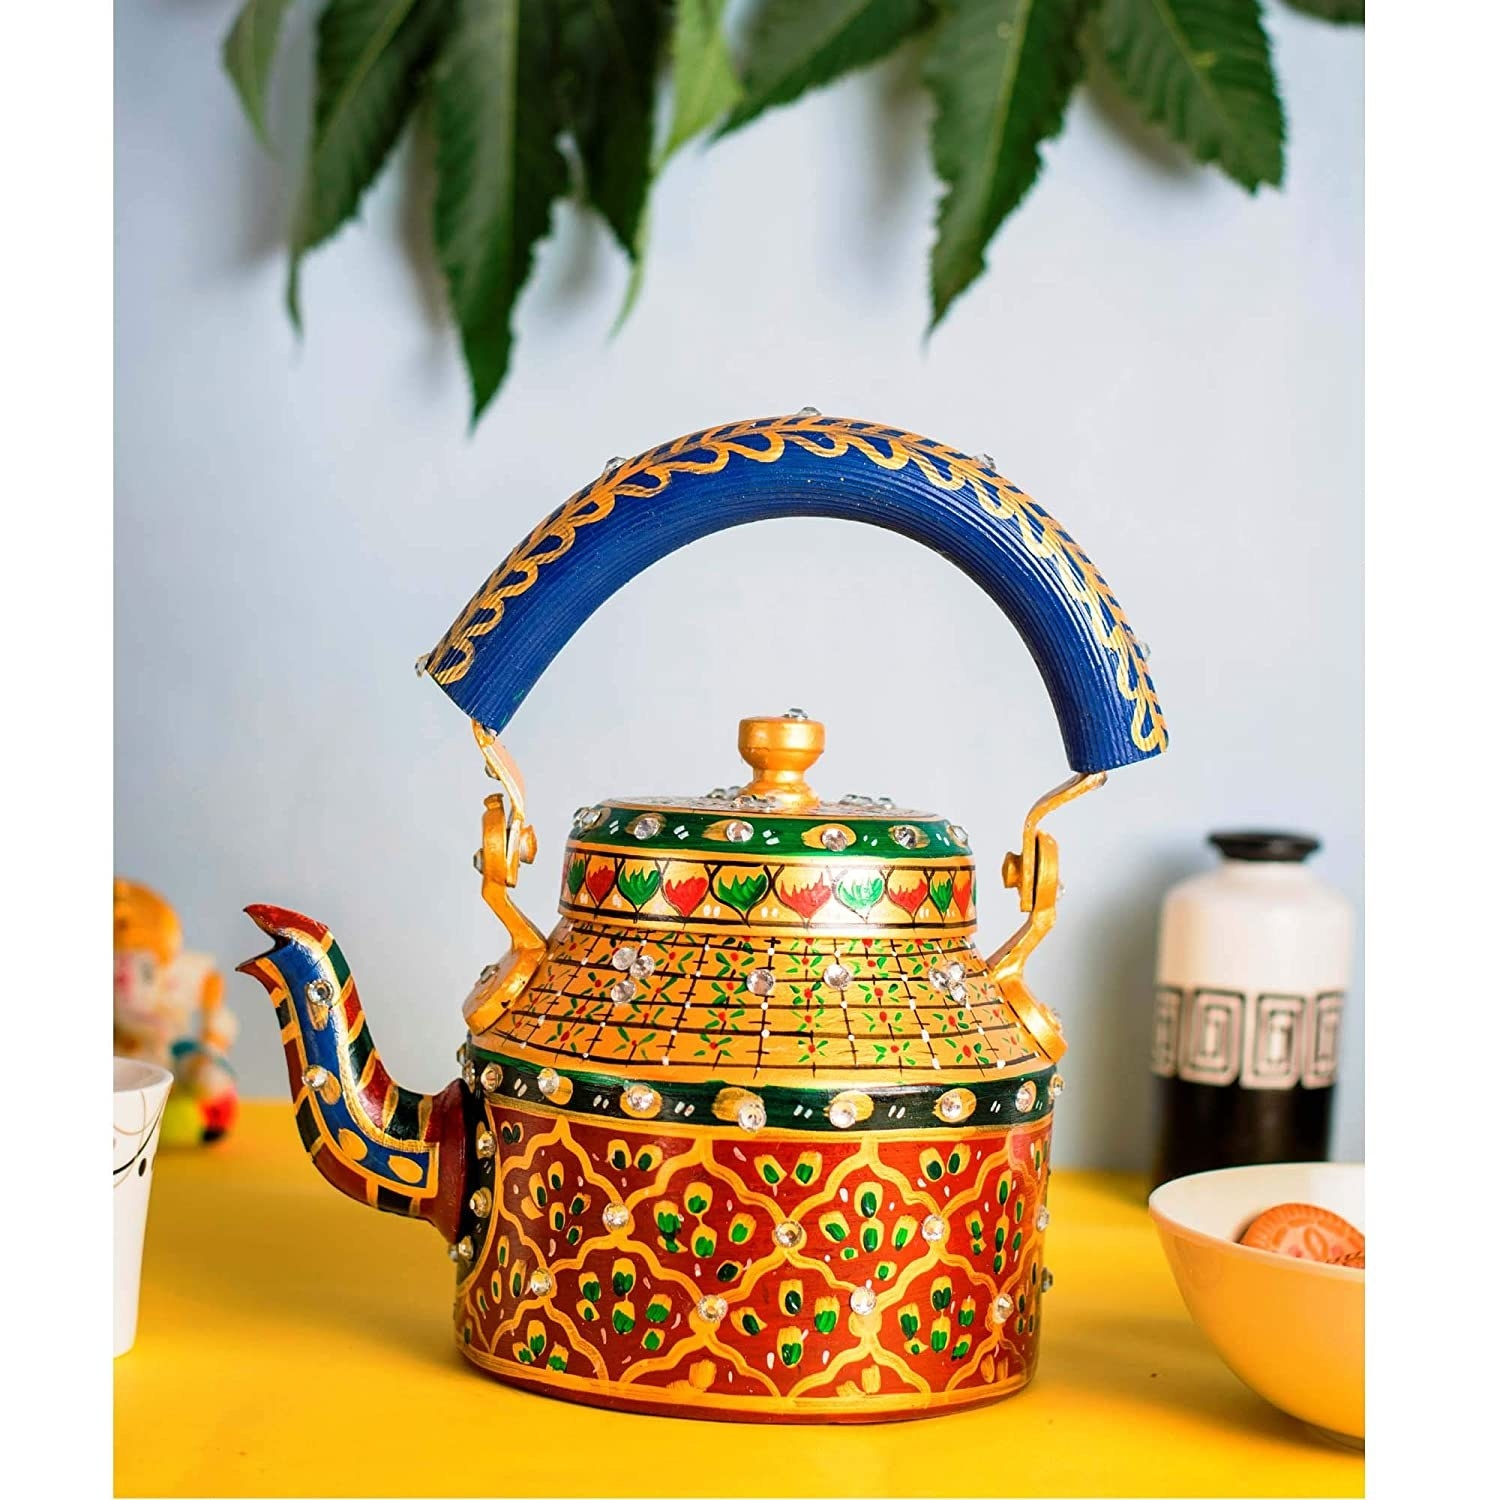 An aluminium kettle painted with an intricate design in shades of red, yellow, green, and royal blue.